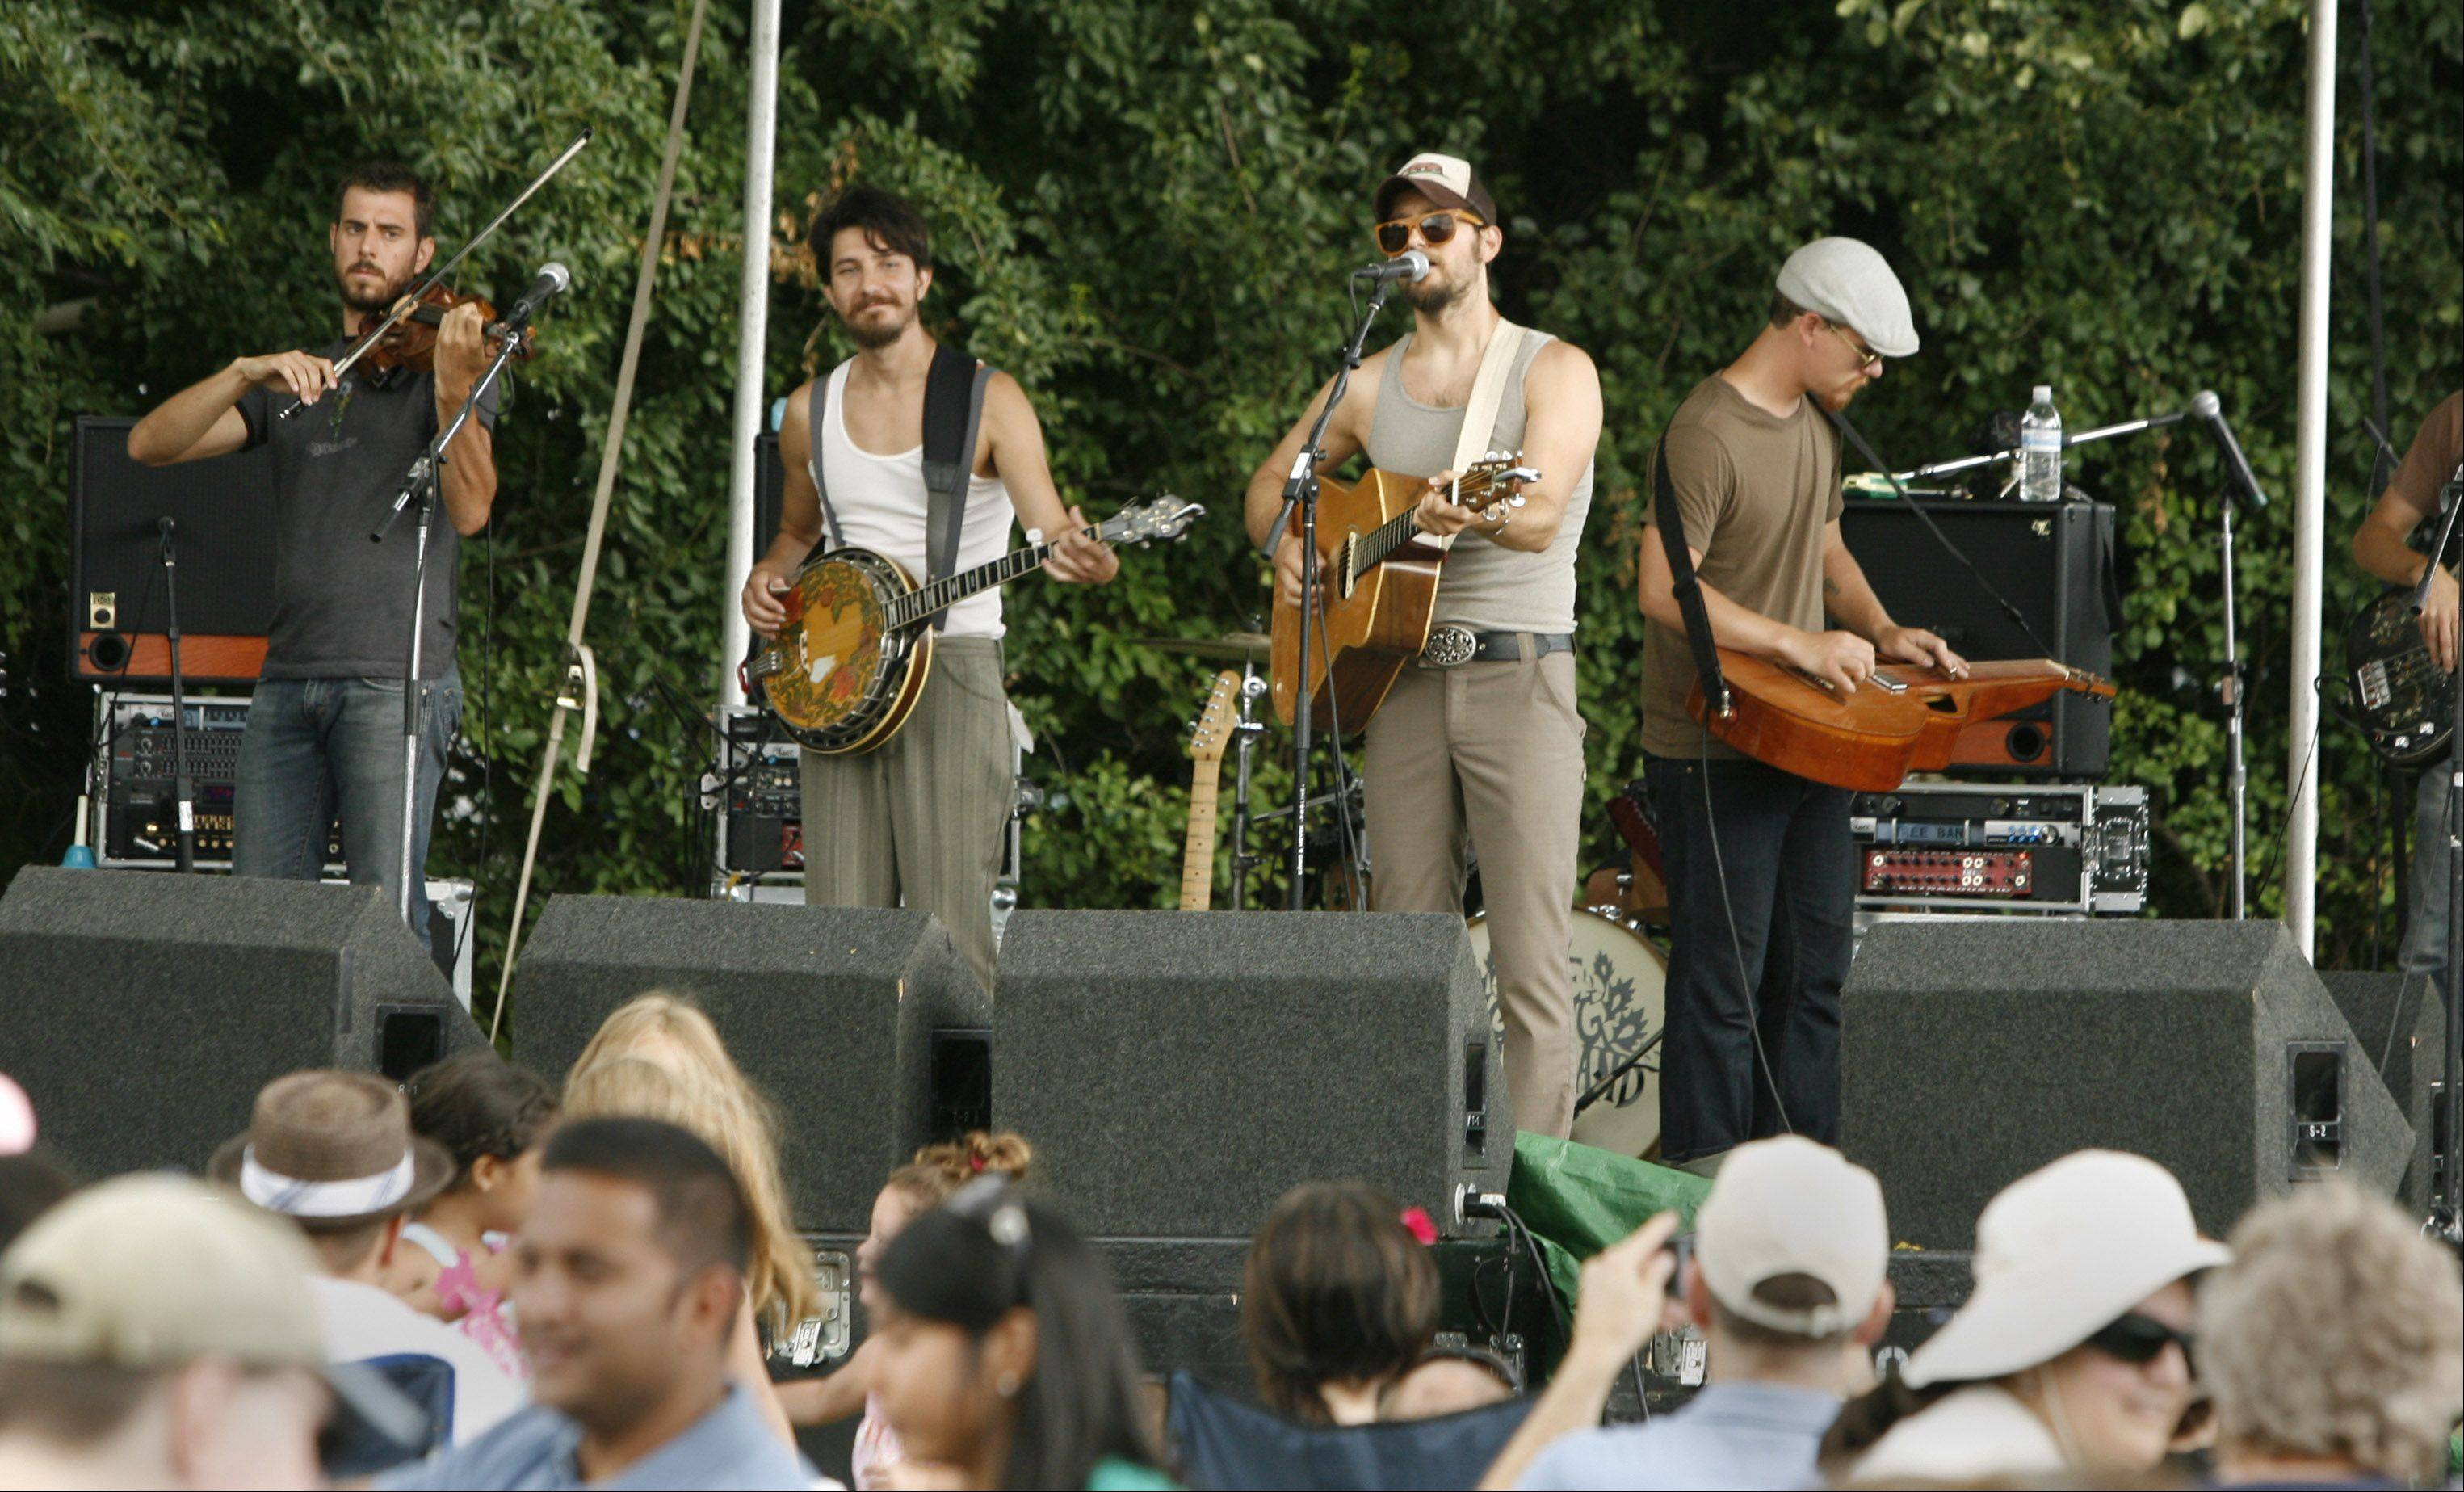 Four musical groups will play both days of Naperville's Veggie Fest, including The Giving Tree Band.